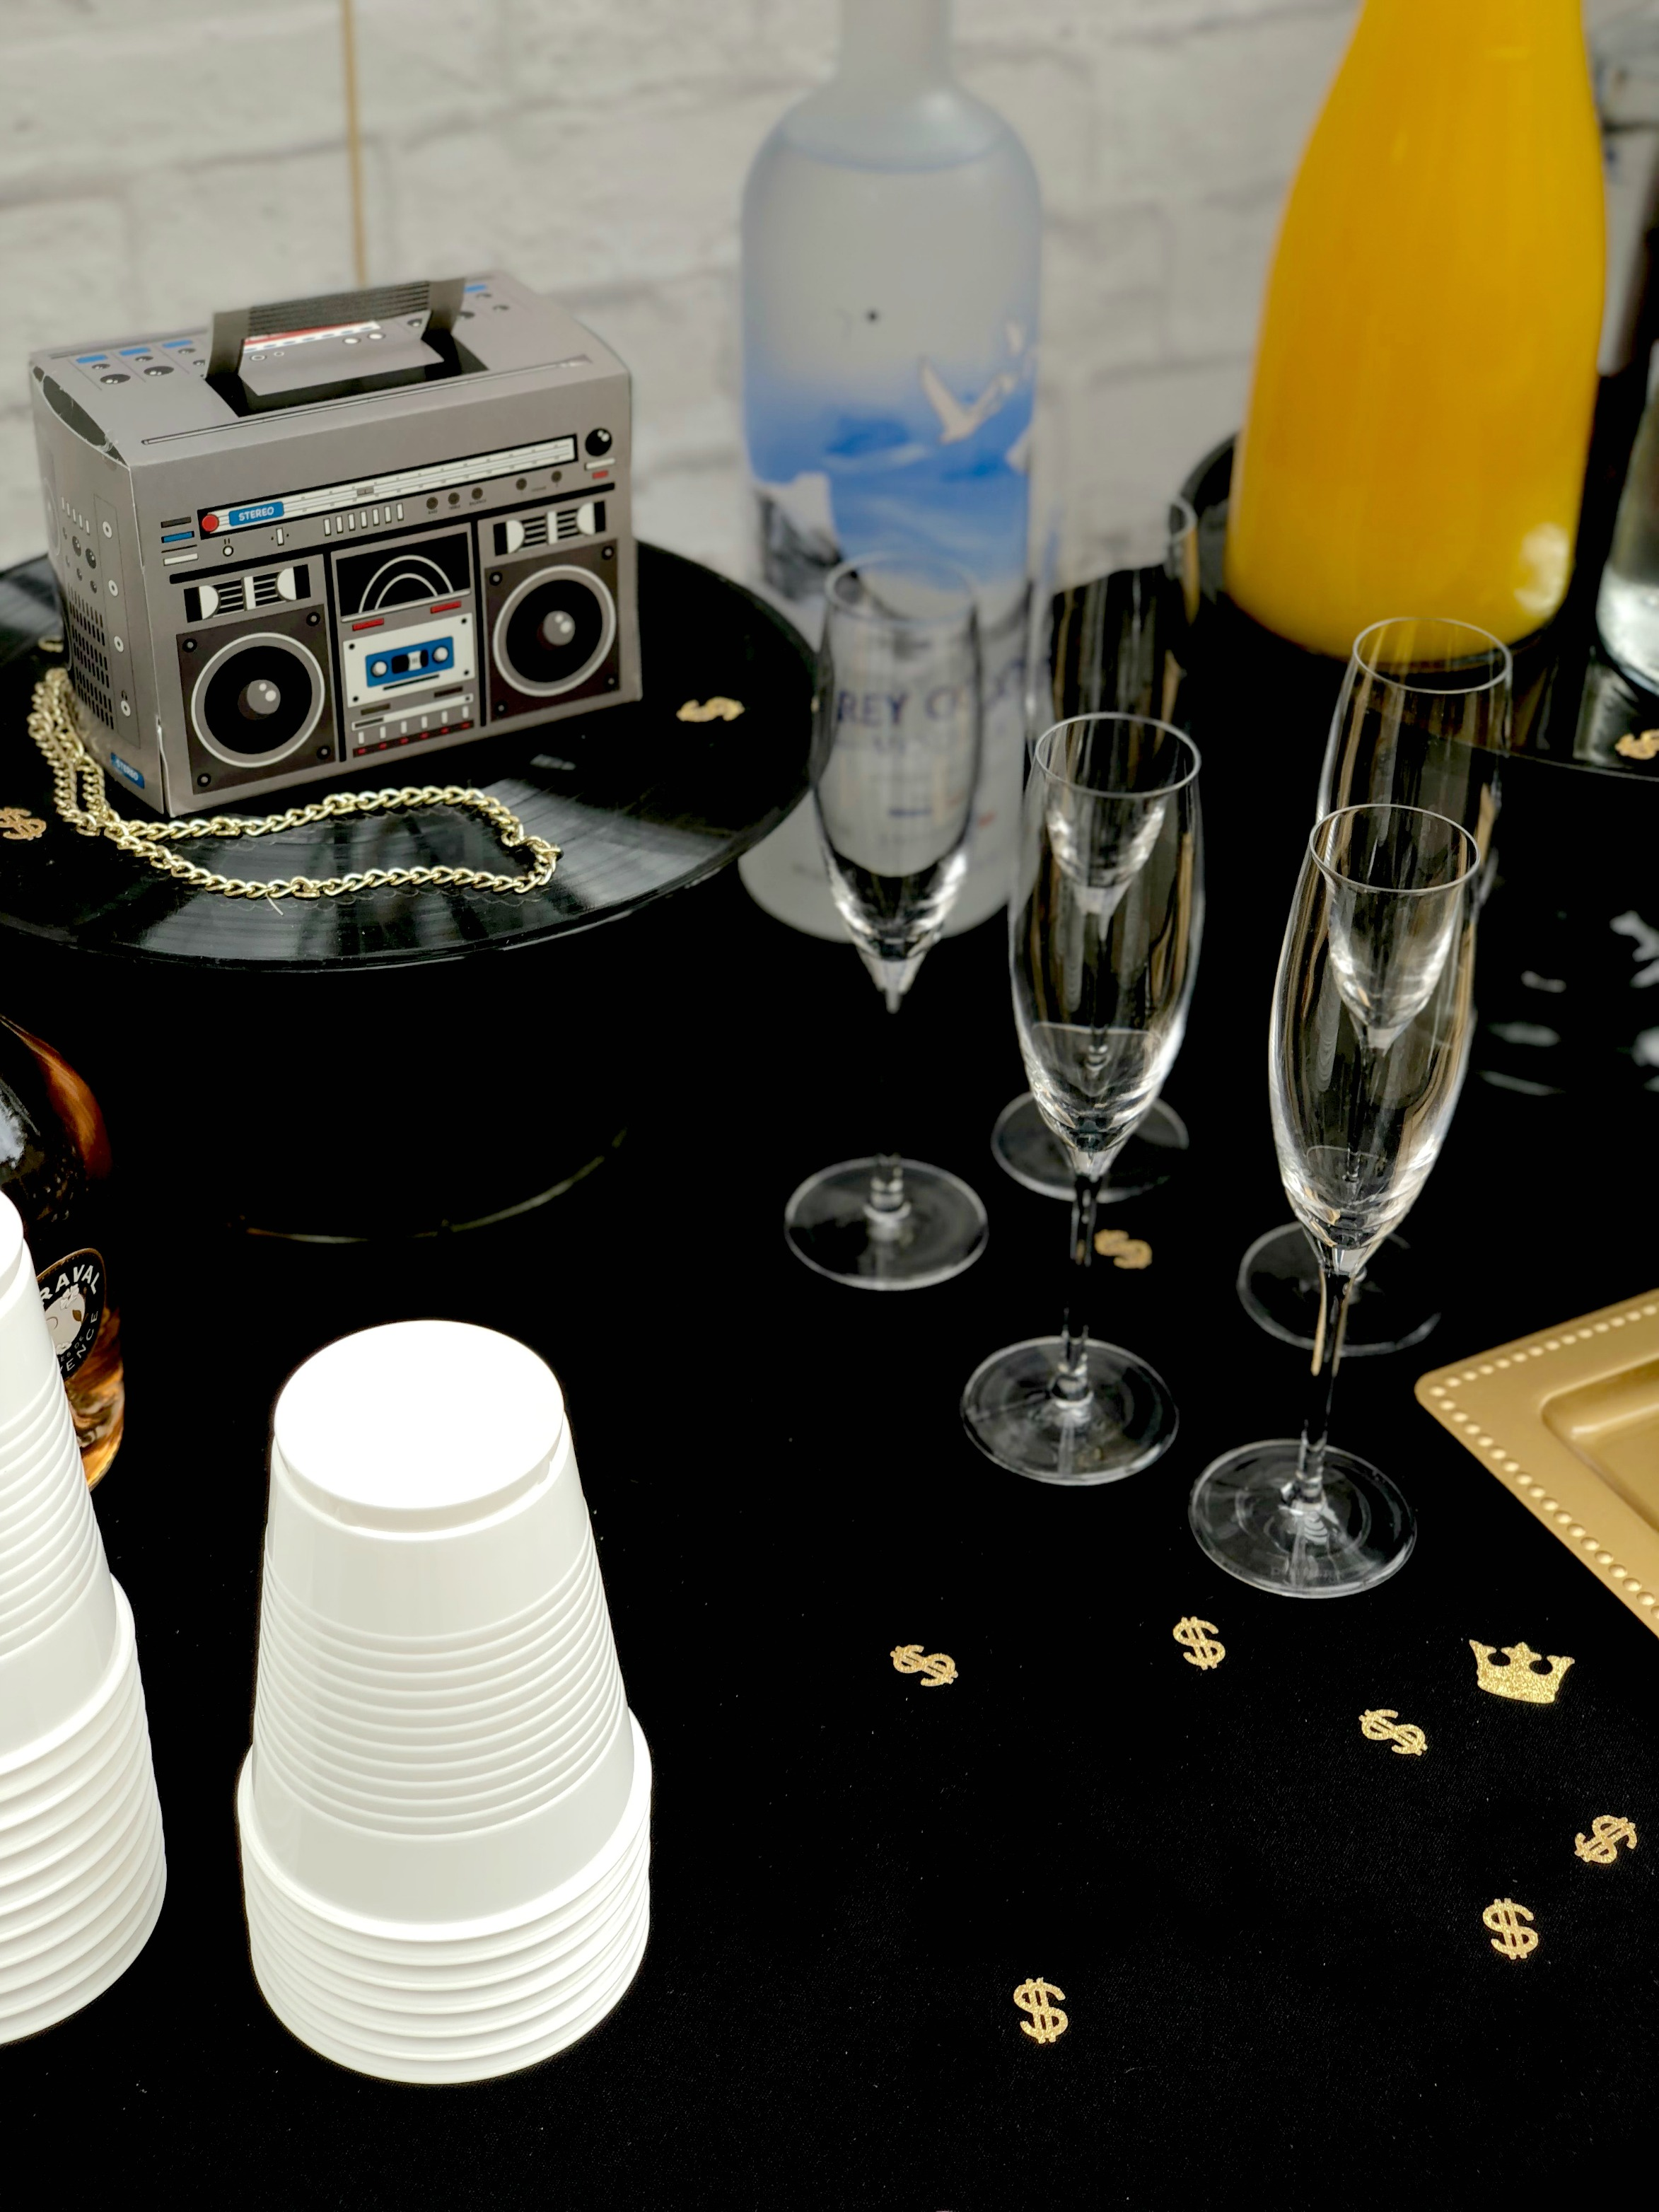 HipHop Drinks Table-90's Party Ideas-www.SugarPartiesLA.com.jpg